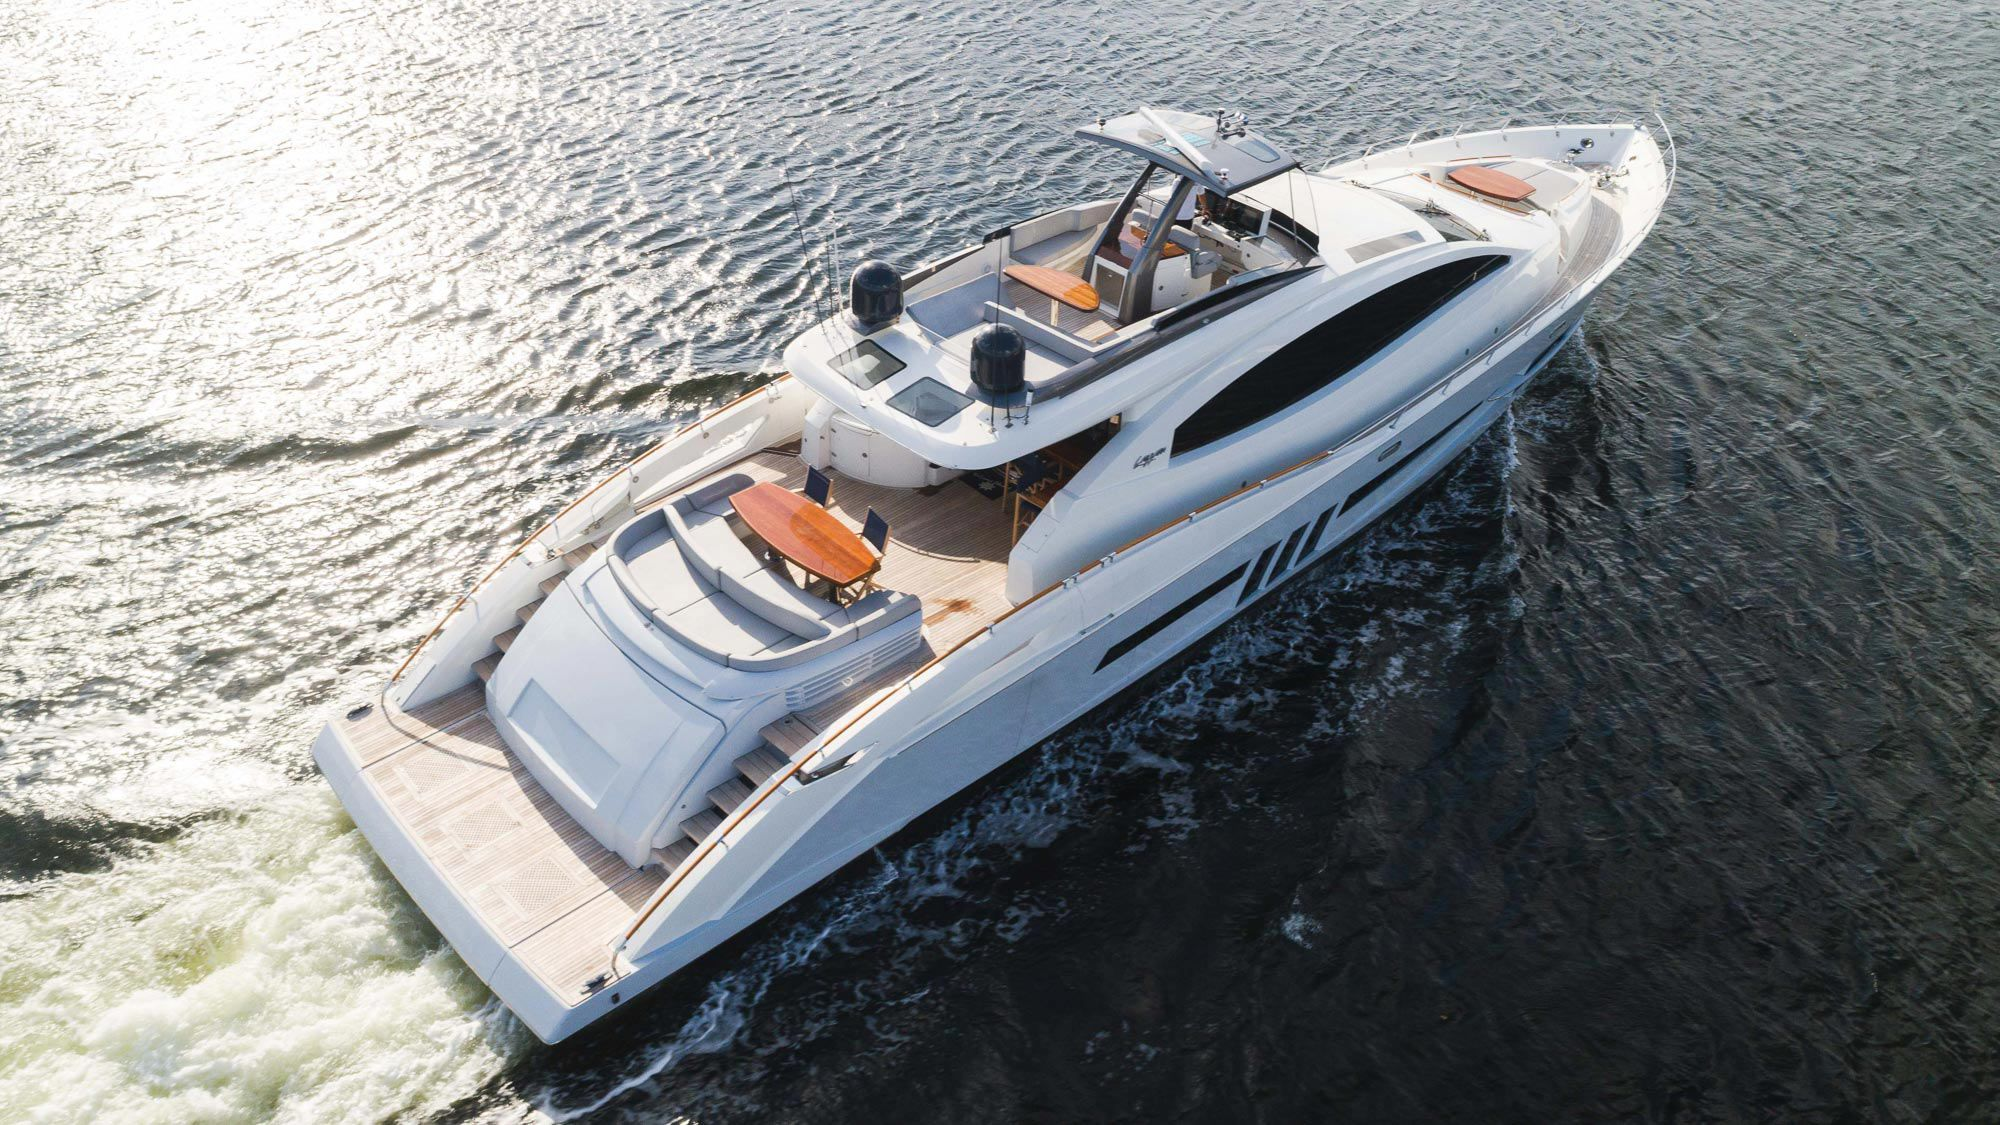 The 92-foot Lazzara <i>Helios</i> is available for charter for Super Bowl LV in Tampa, Florida.